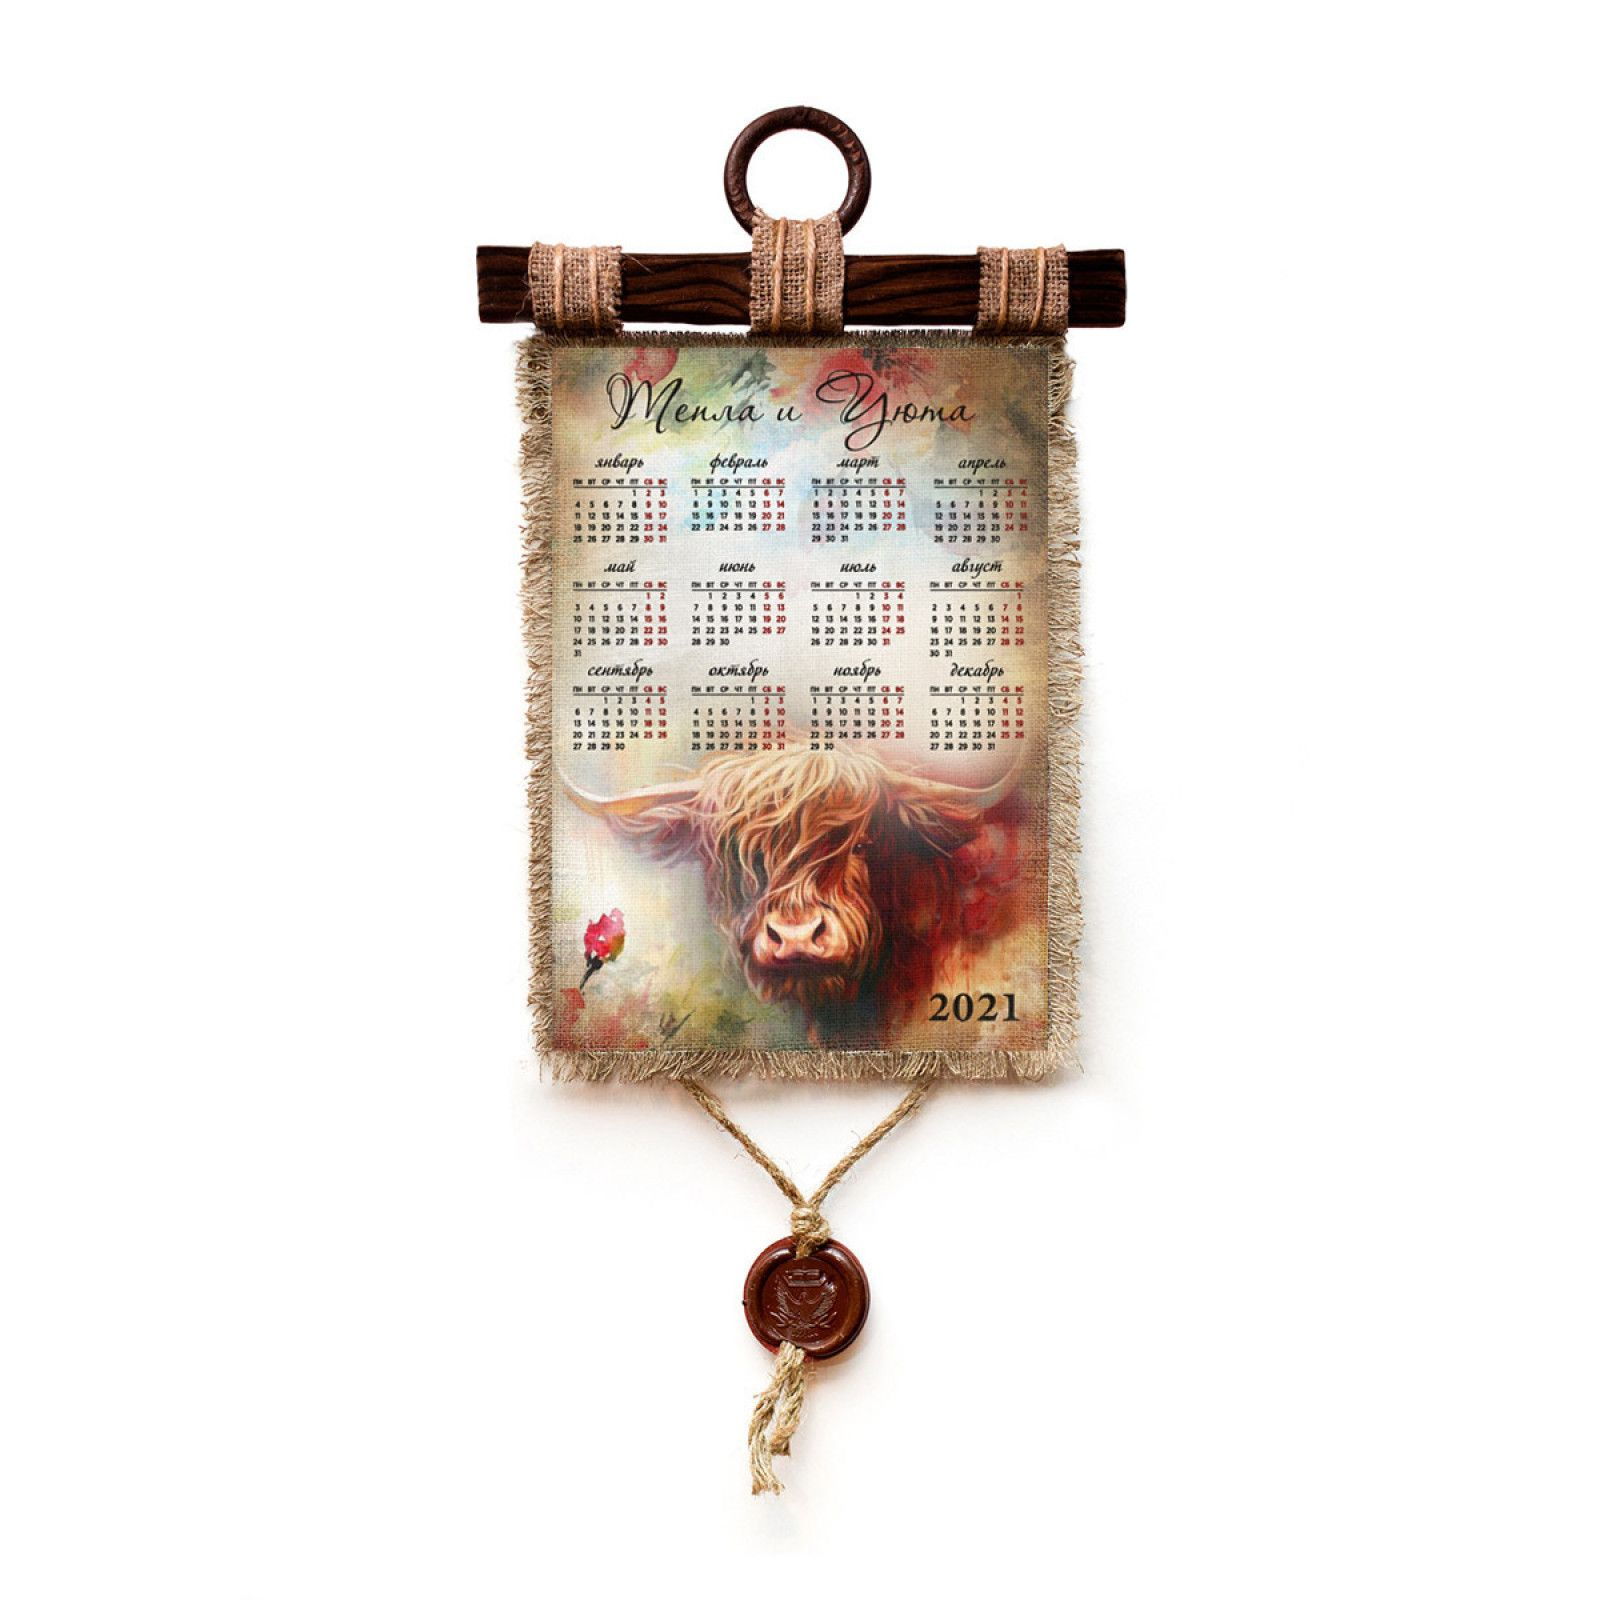 "Universal scroll / Wall calendar ""2021 Warmth and comfort"" with a pendant made of sealing wax, A4 format vertical"